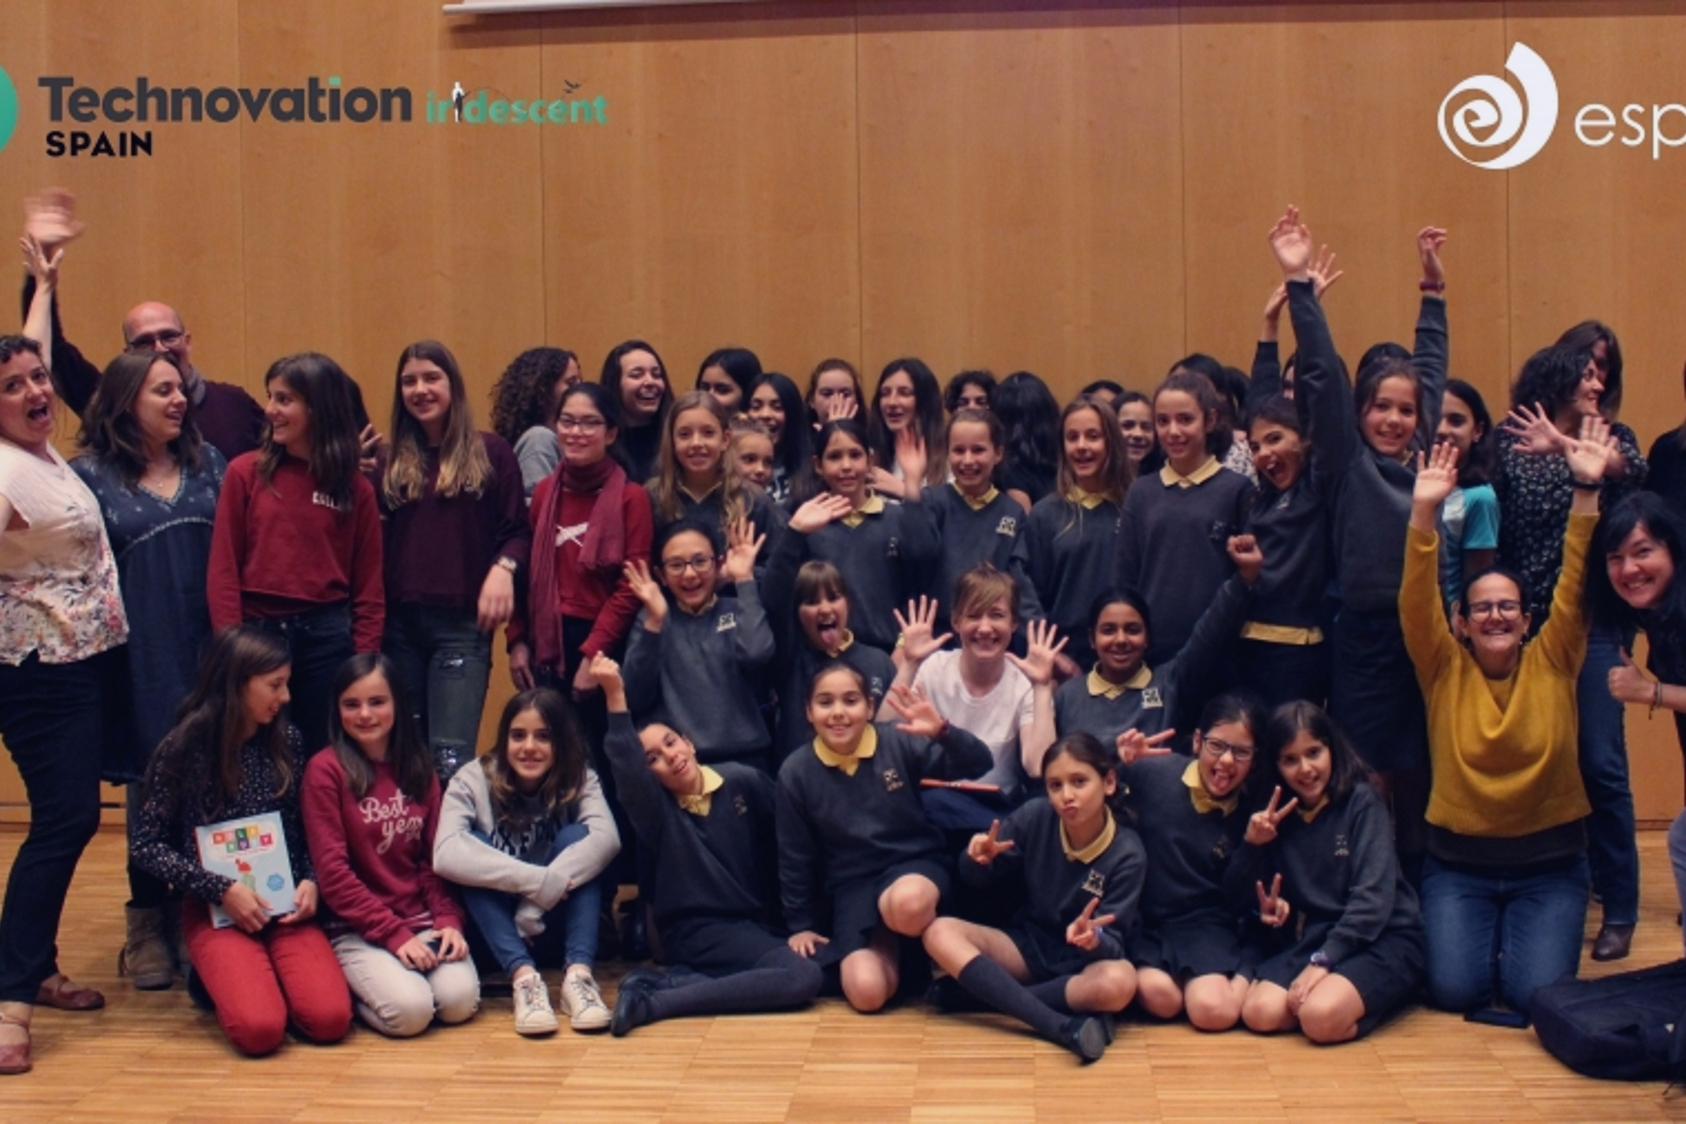 Technovation Spain